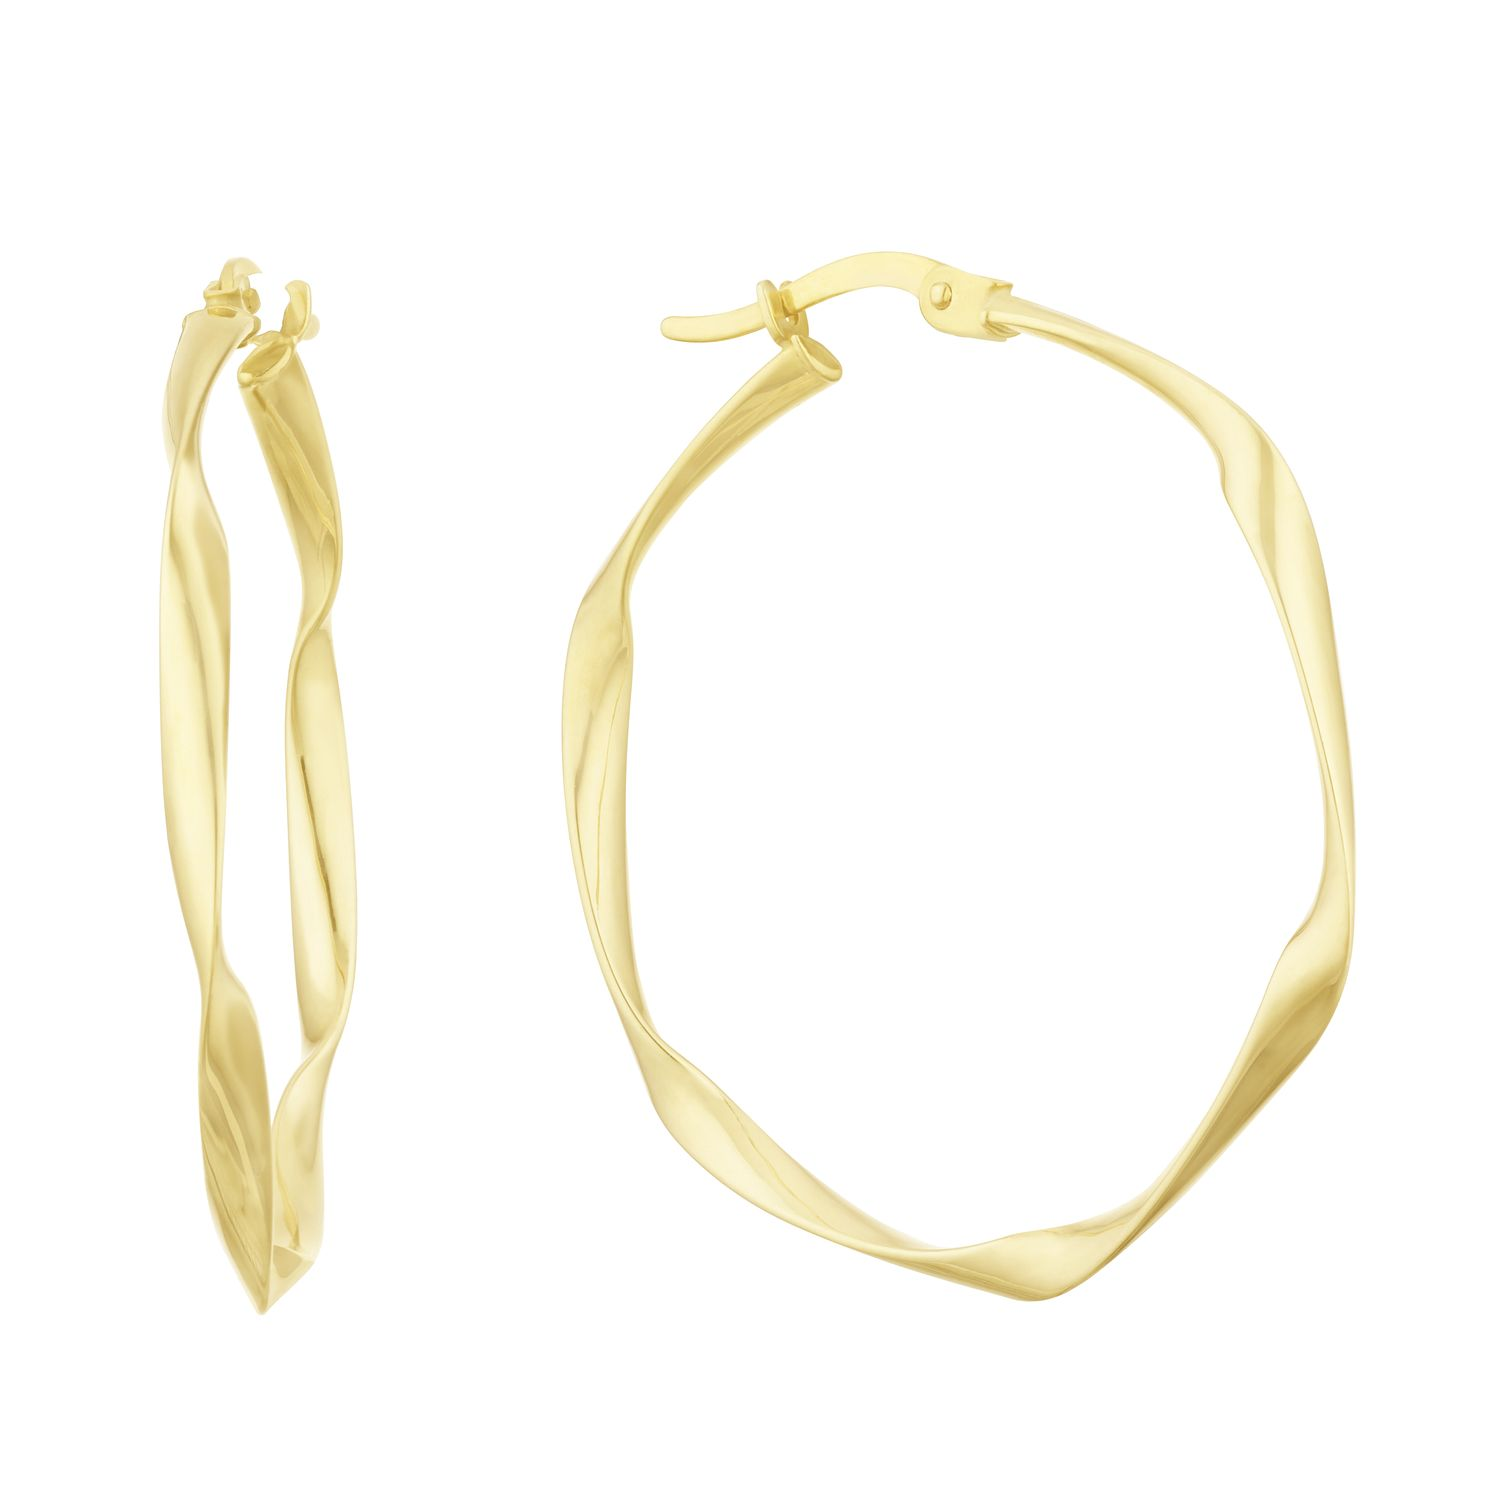 Together Silver & 9ct Bonded Gold Twist Creole Hoop Earrings - Product number 3153290